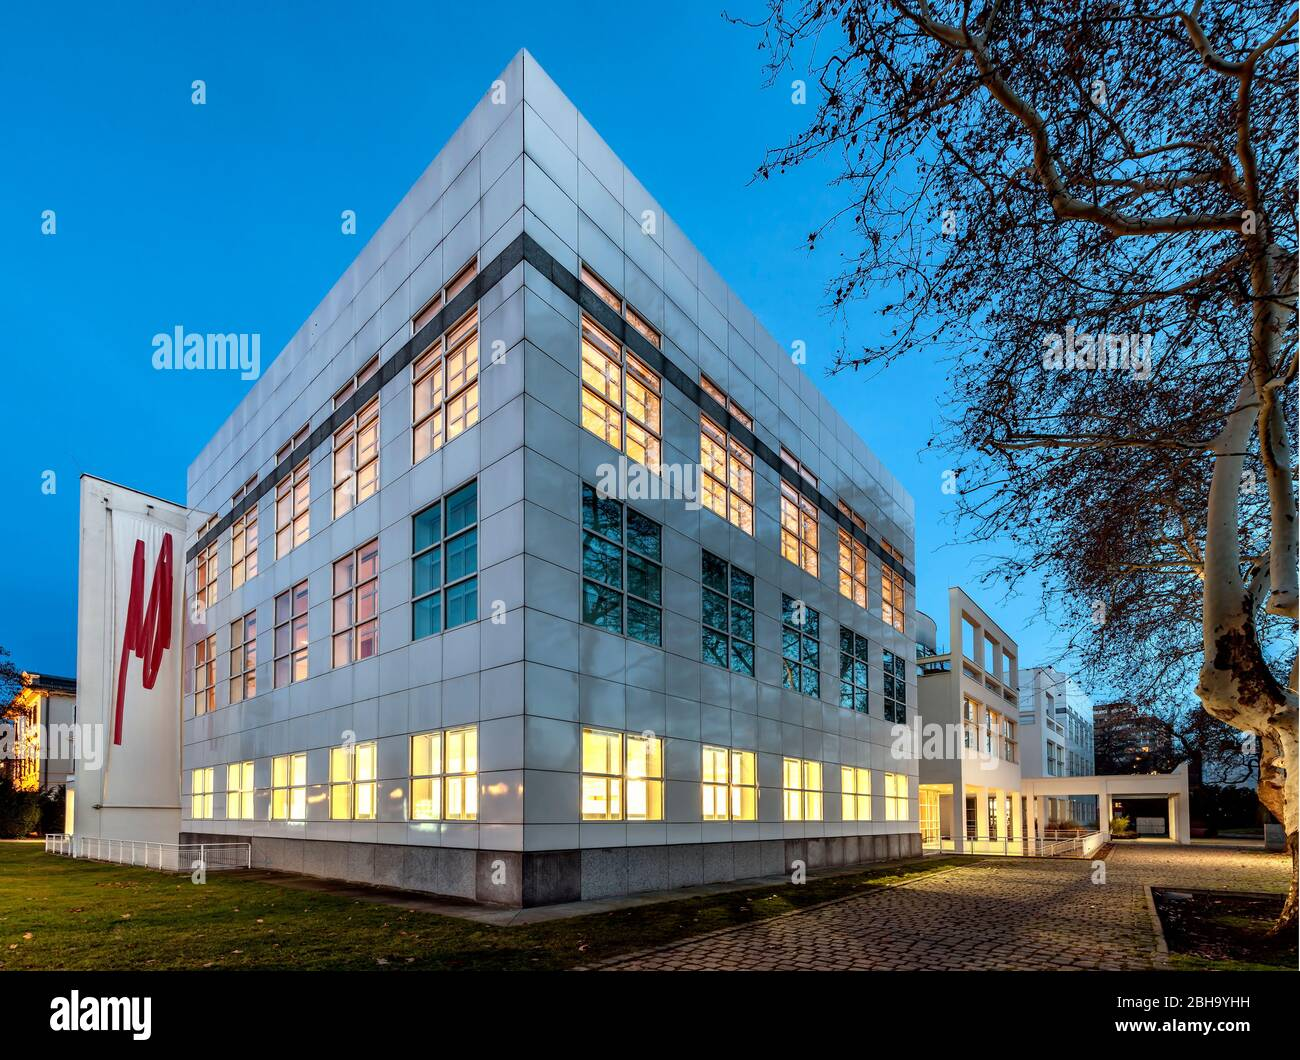 Mak Frankfurt Museum Of Applied Art High Resolution Stock Photography And Images - Alamy